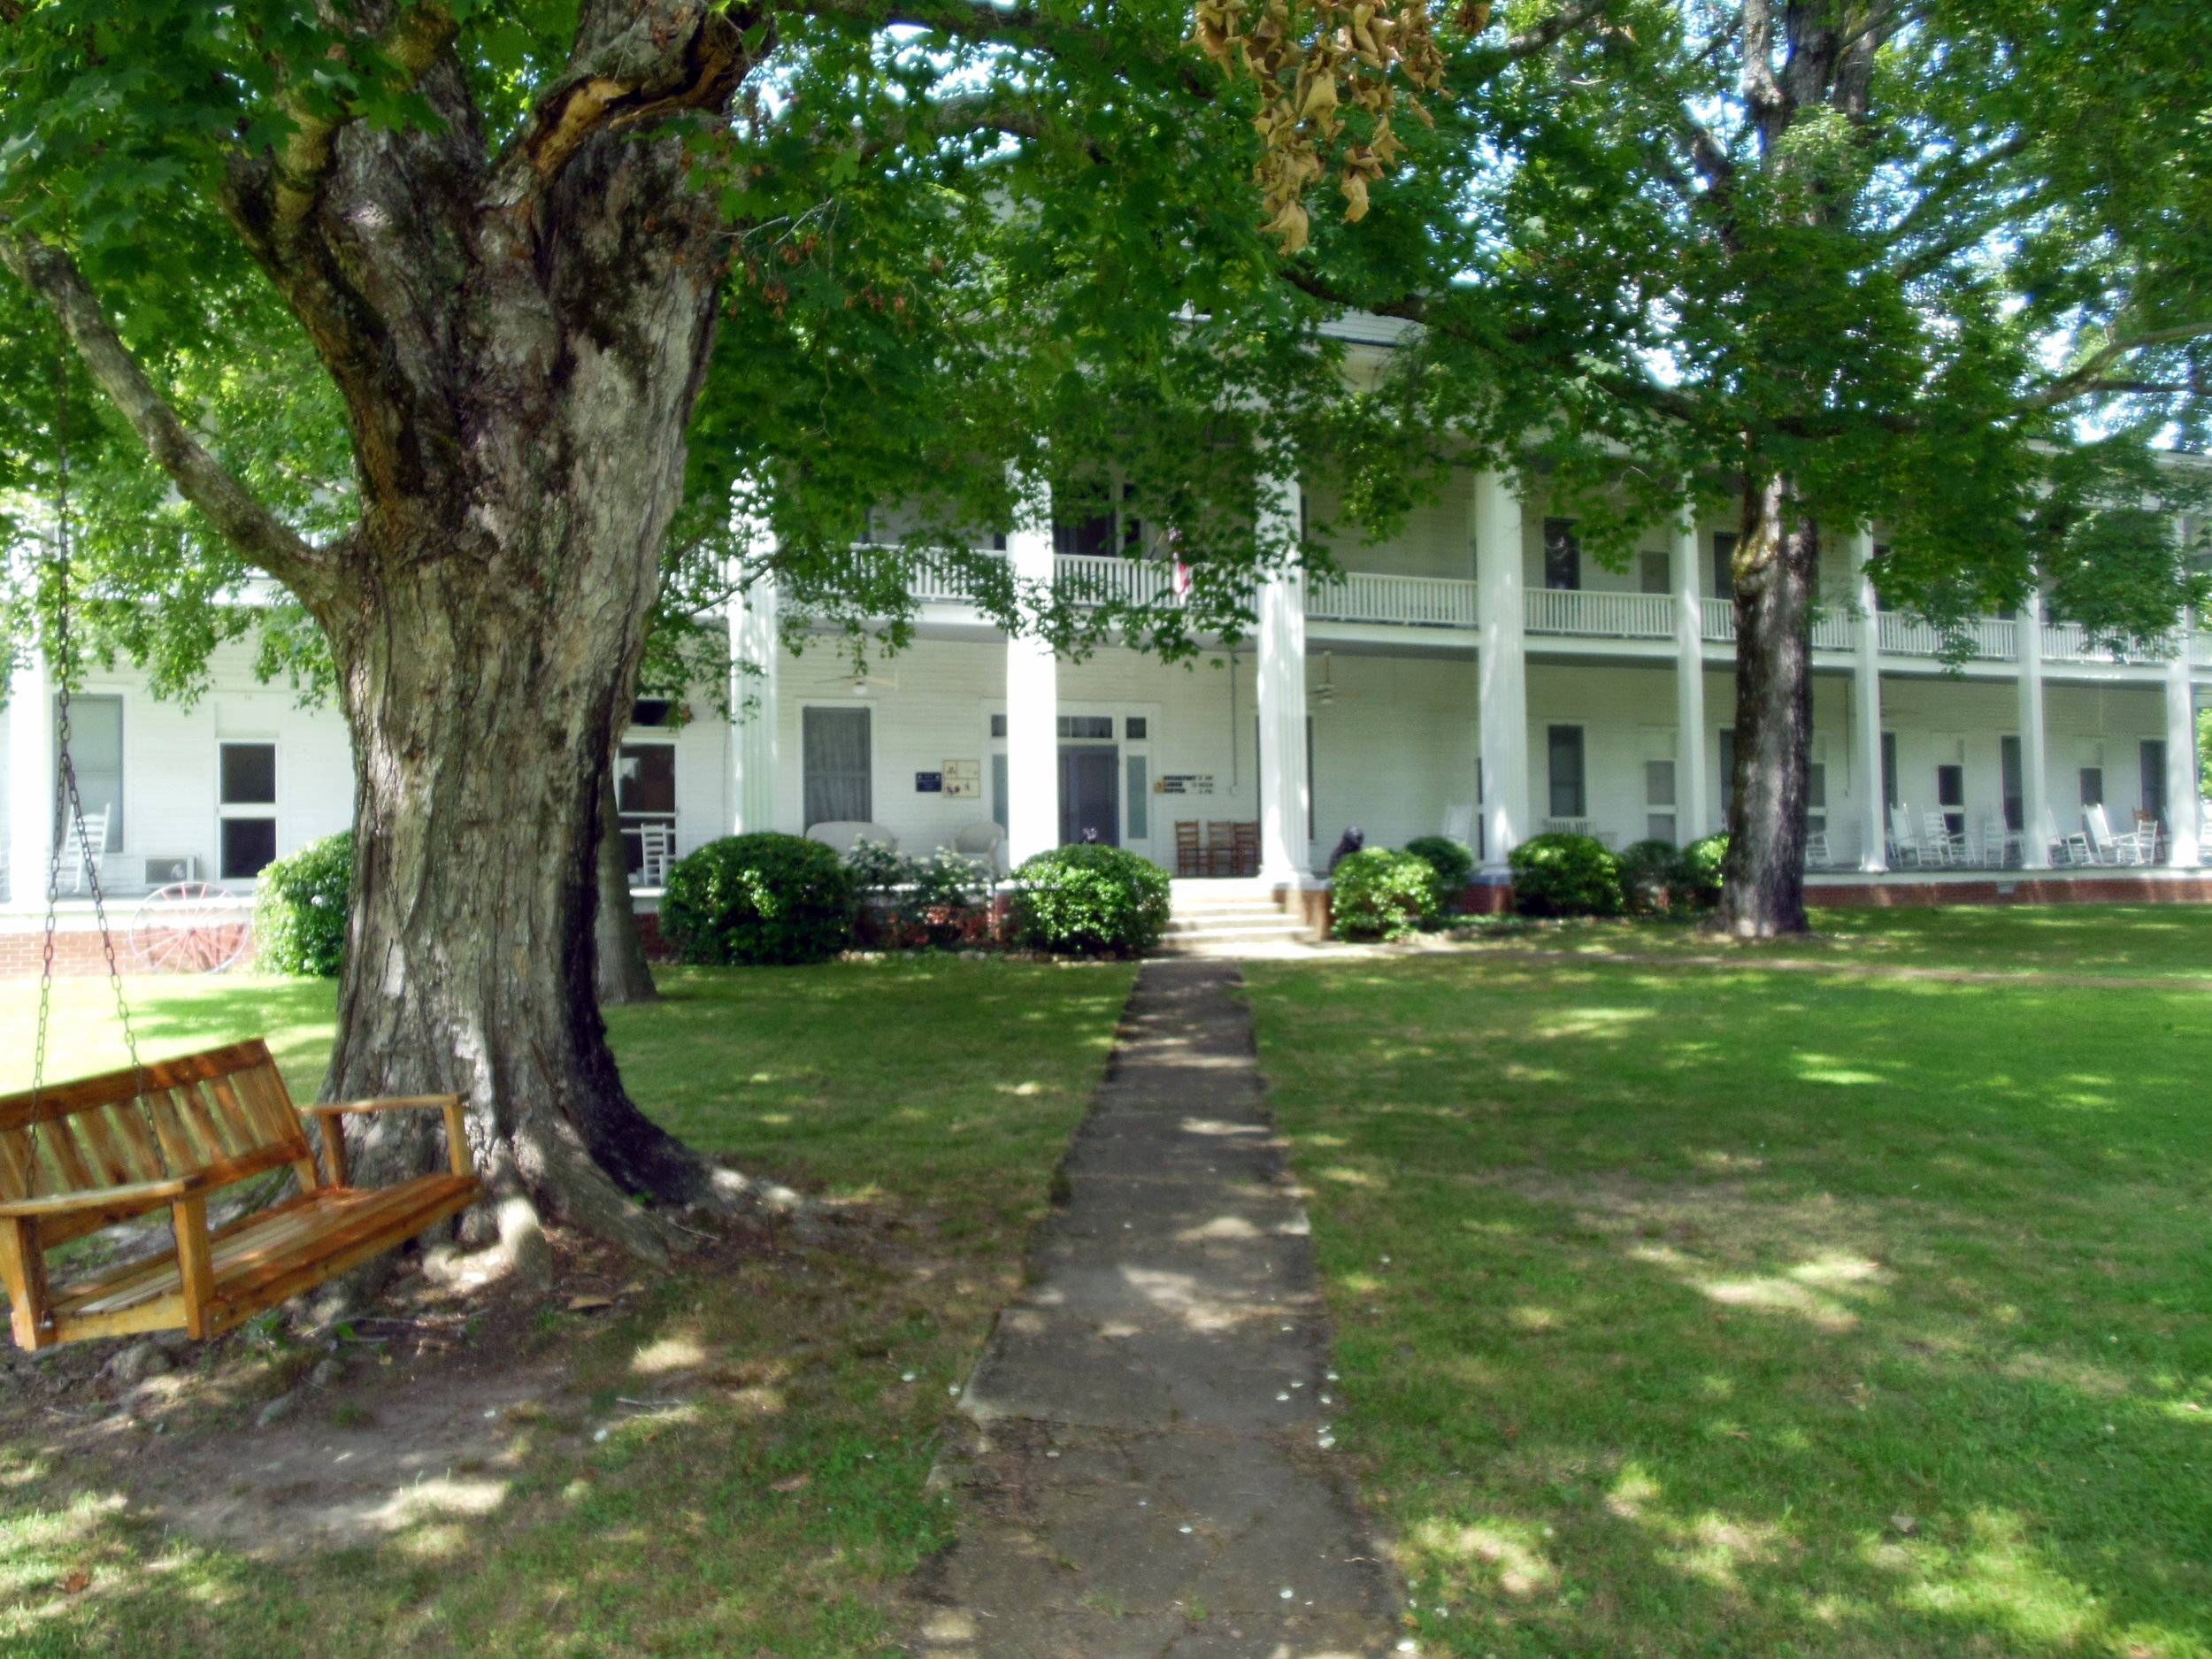 The Donoho hotel in Red Boiling Springs, TN remains a favorite location for weddings and other special events.